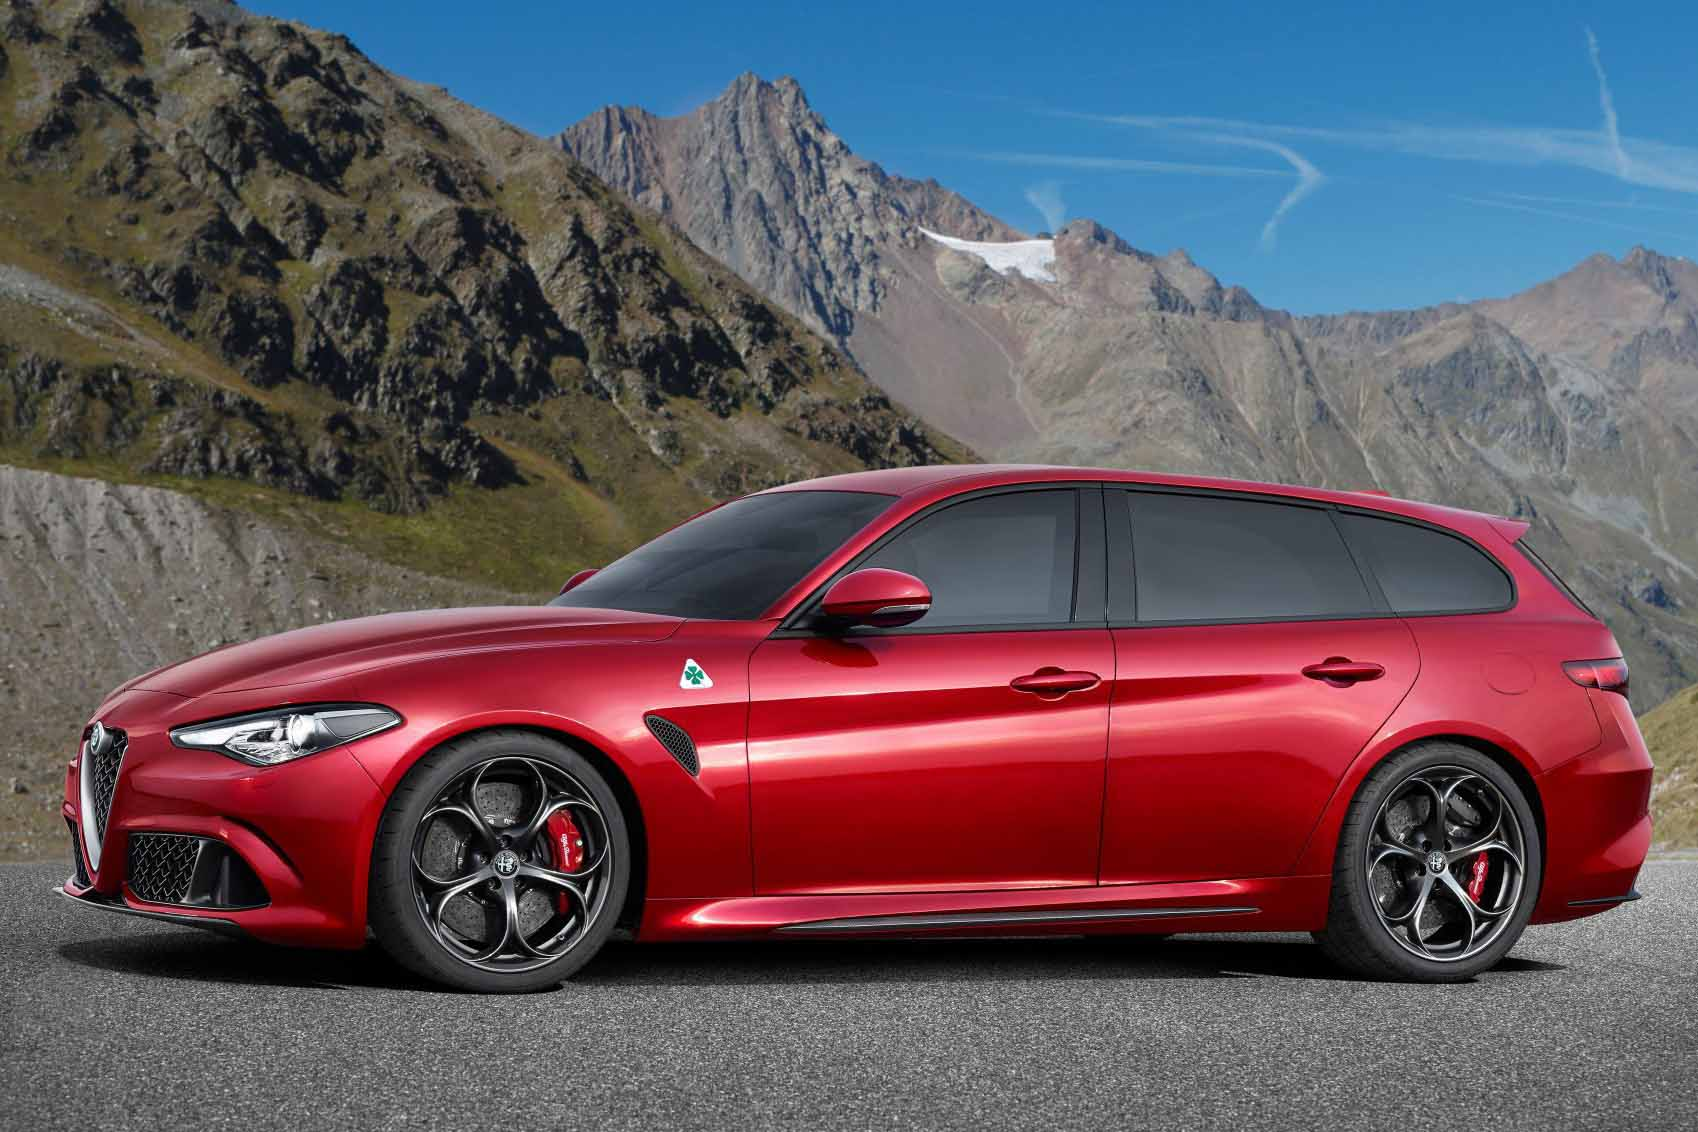 alfa romeo giulia sportwagon dalla germania una sorpresa qn motori. Black Bedroom Furniture Sets. Home Design Ideas